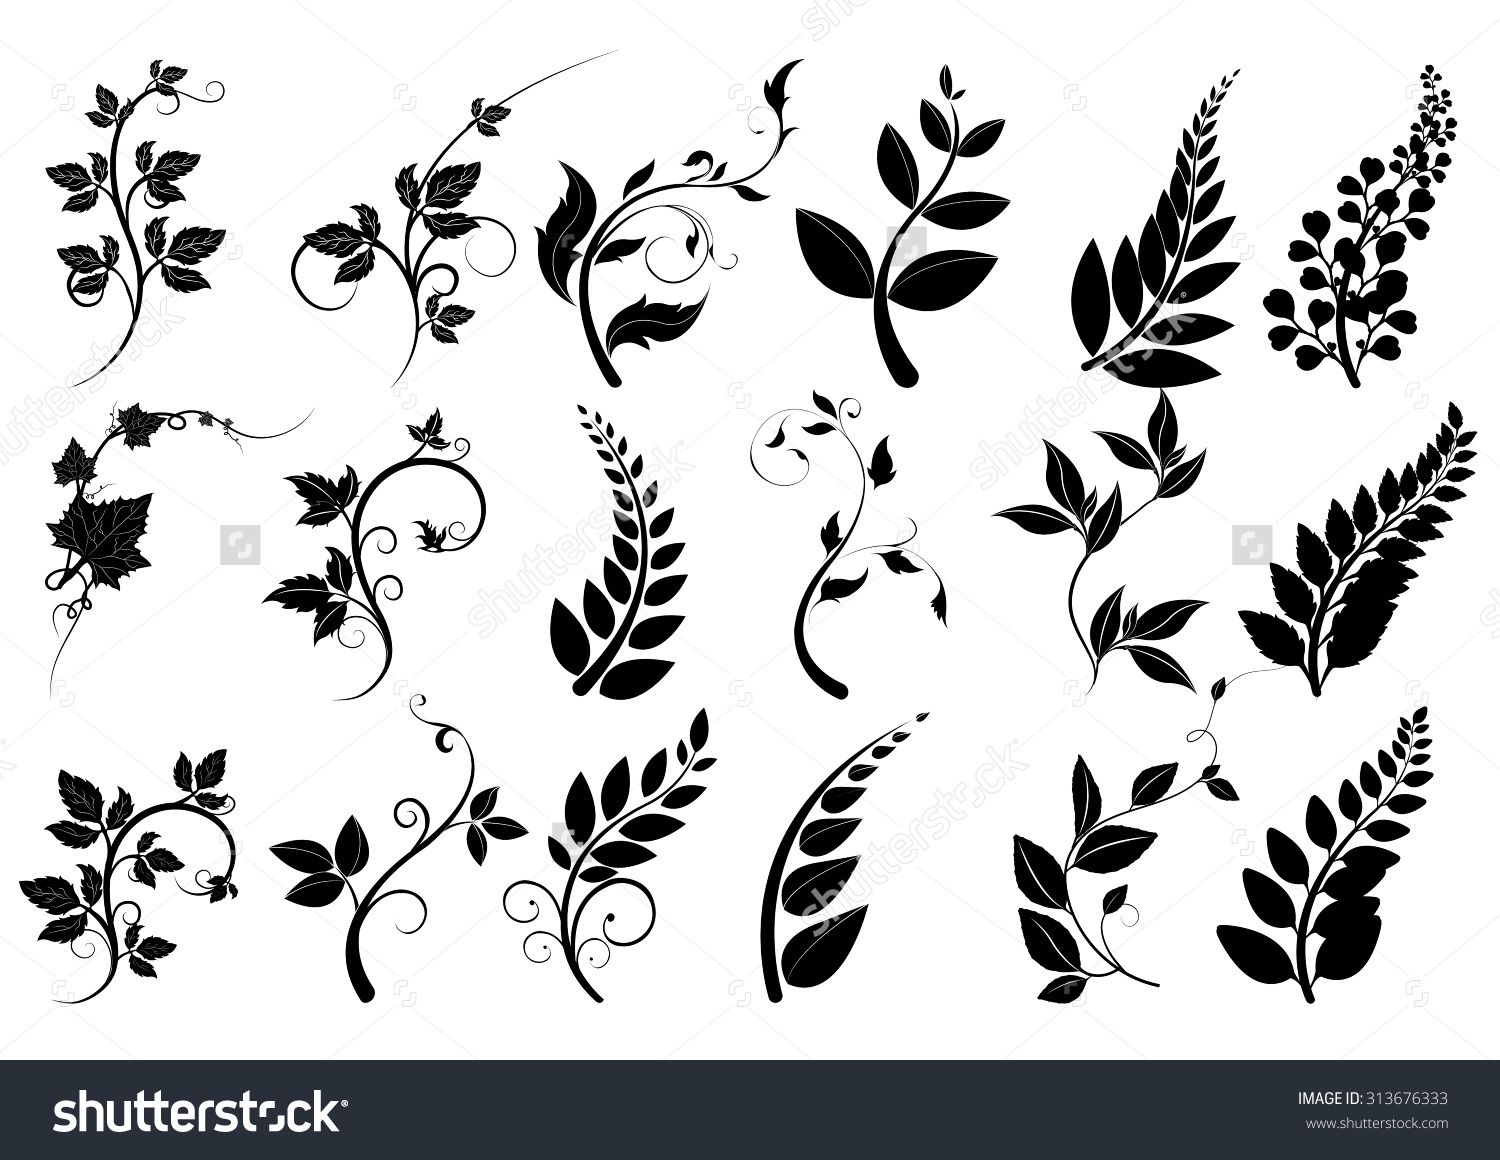 jpg freeuse Silhouettes of trees leaves. Vector dividers leaf